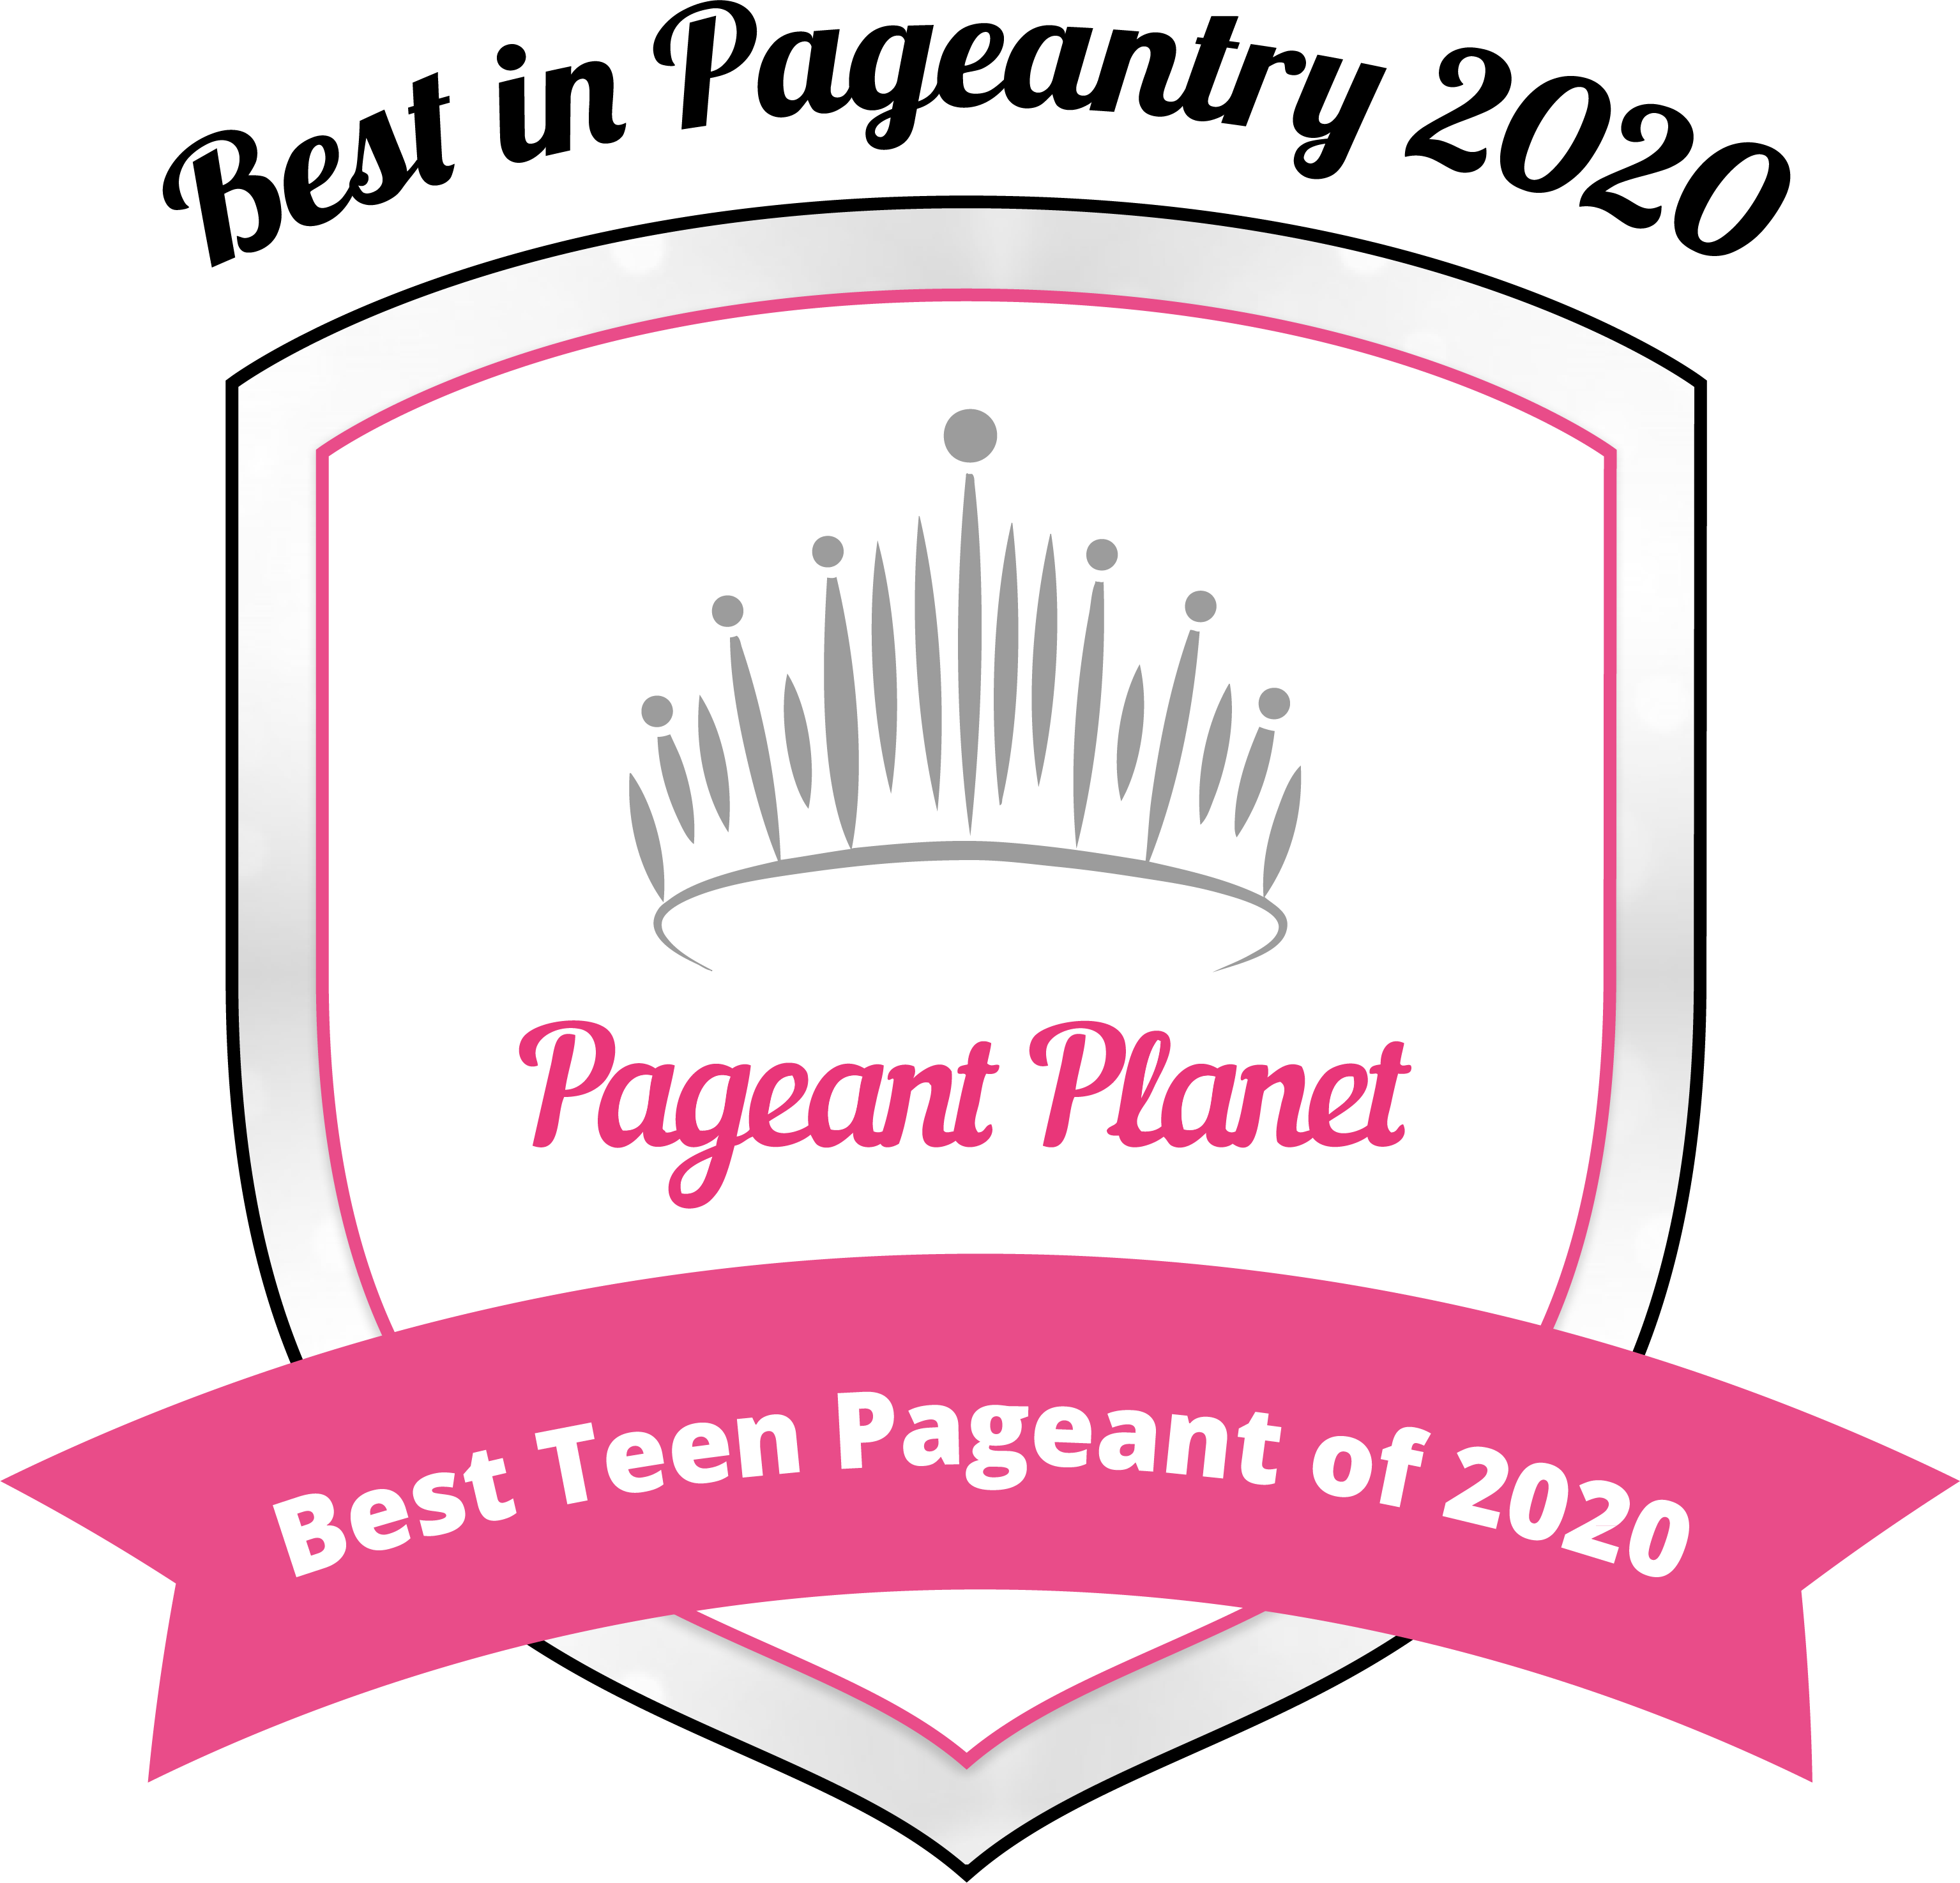 Top 10 Teen Pageant of 2020